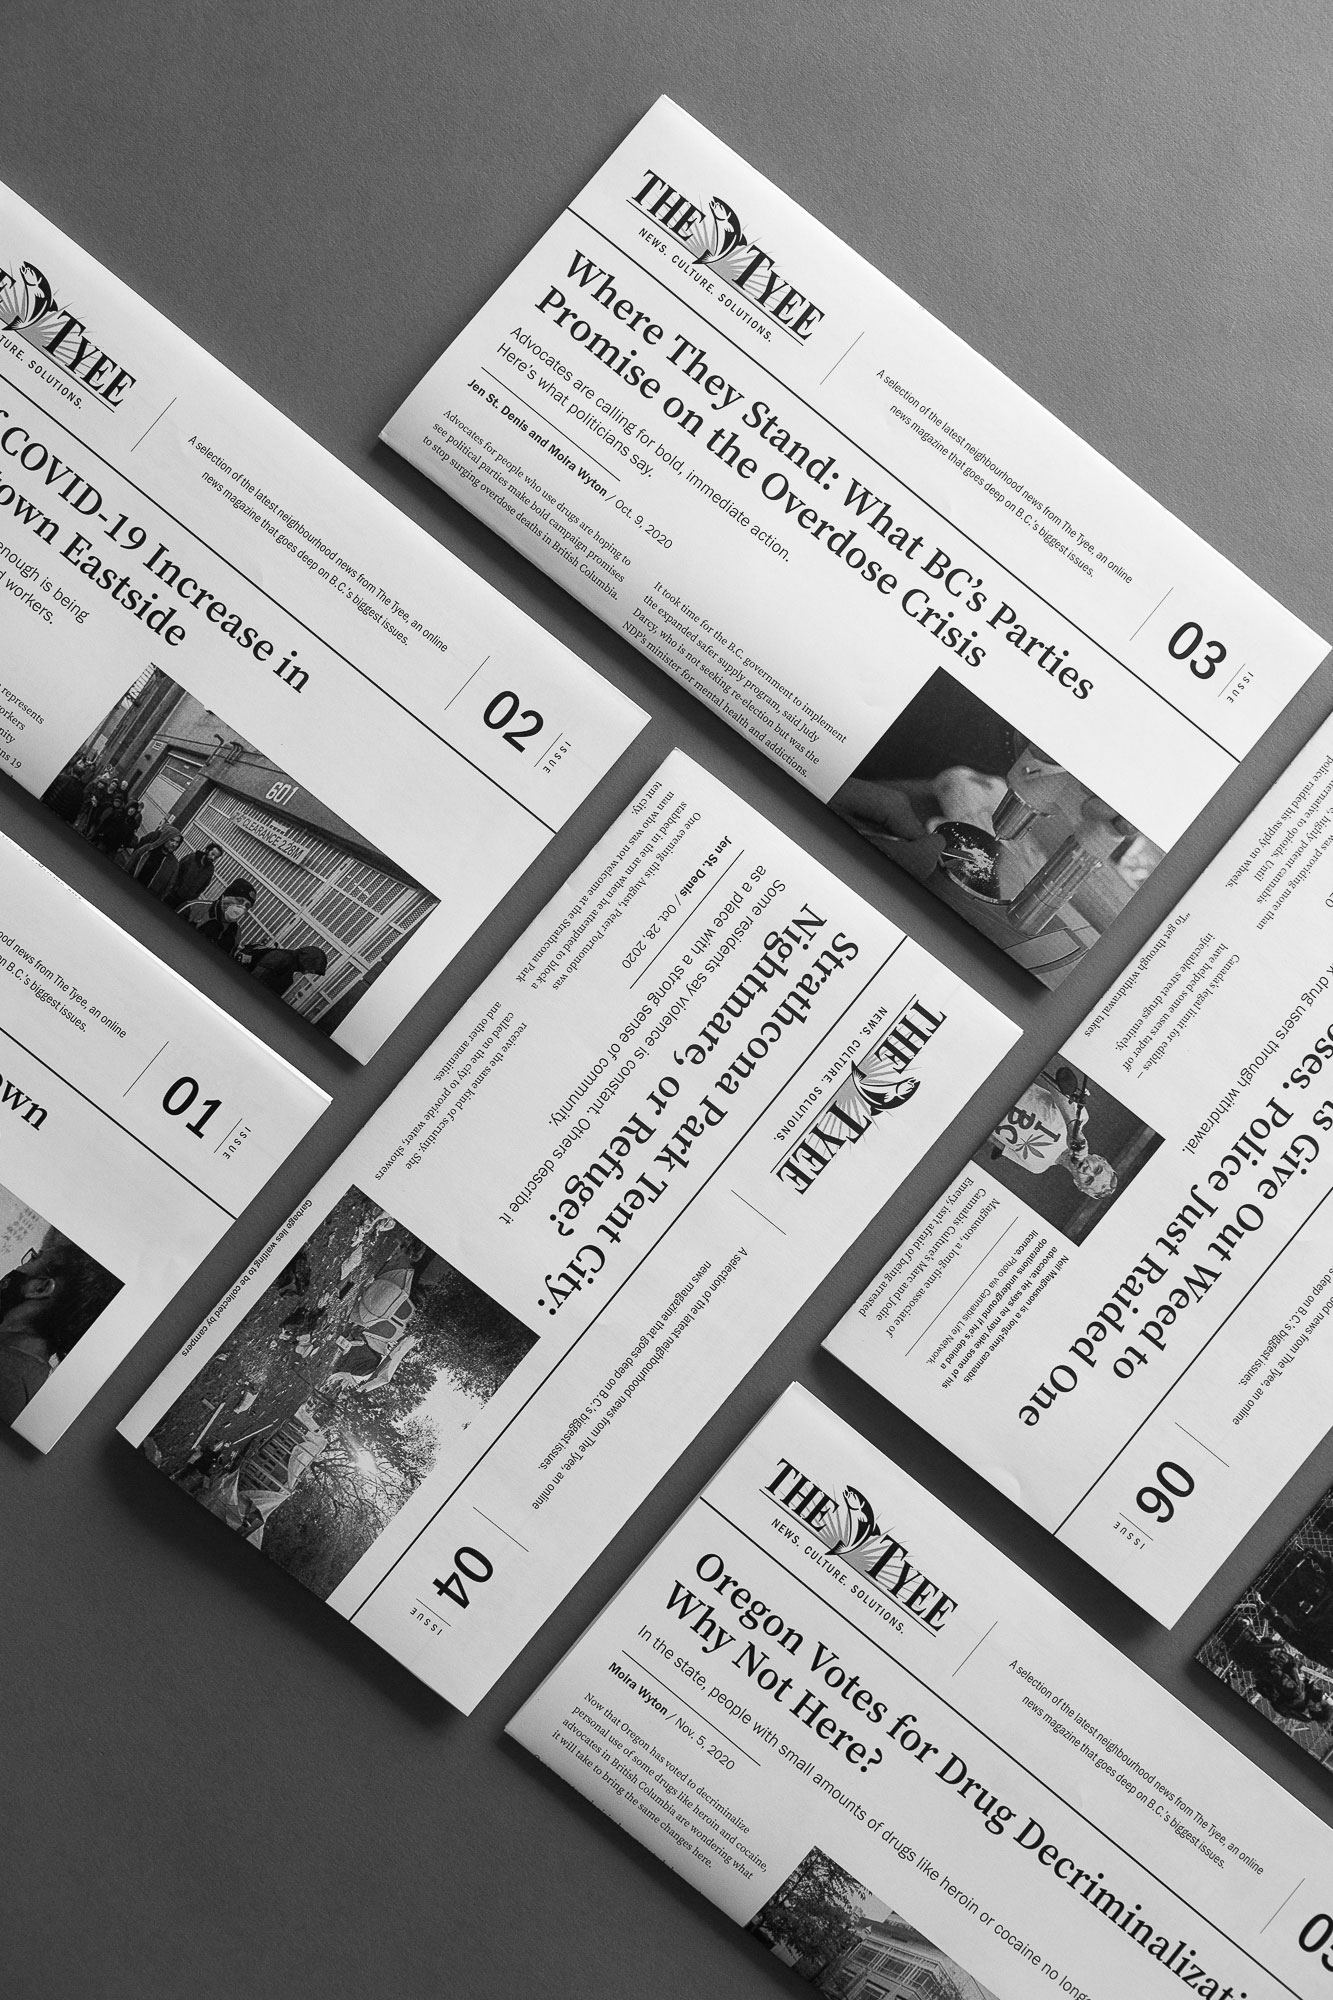 The Tyee printed DTES neighbourhood Newsletter | by www.alicia-carvalho.com